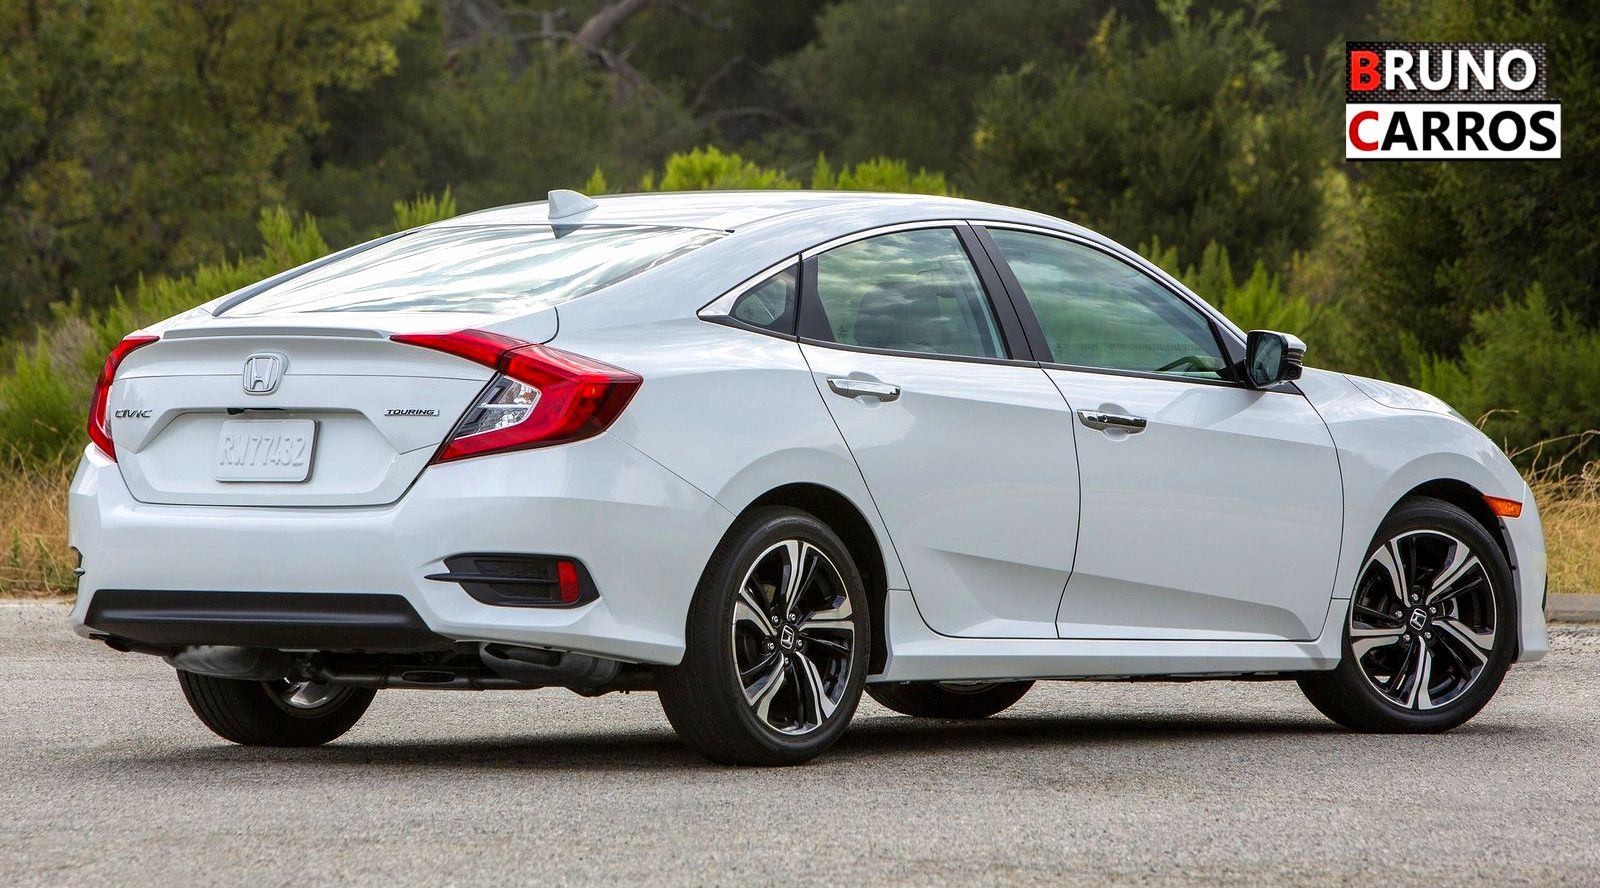 2018 Honda Civic Si Concept photo - 2